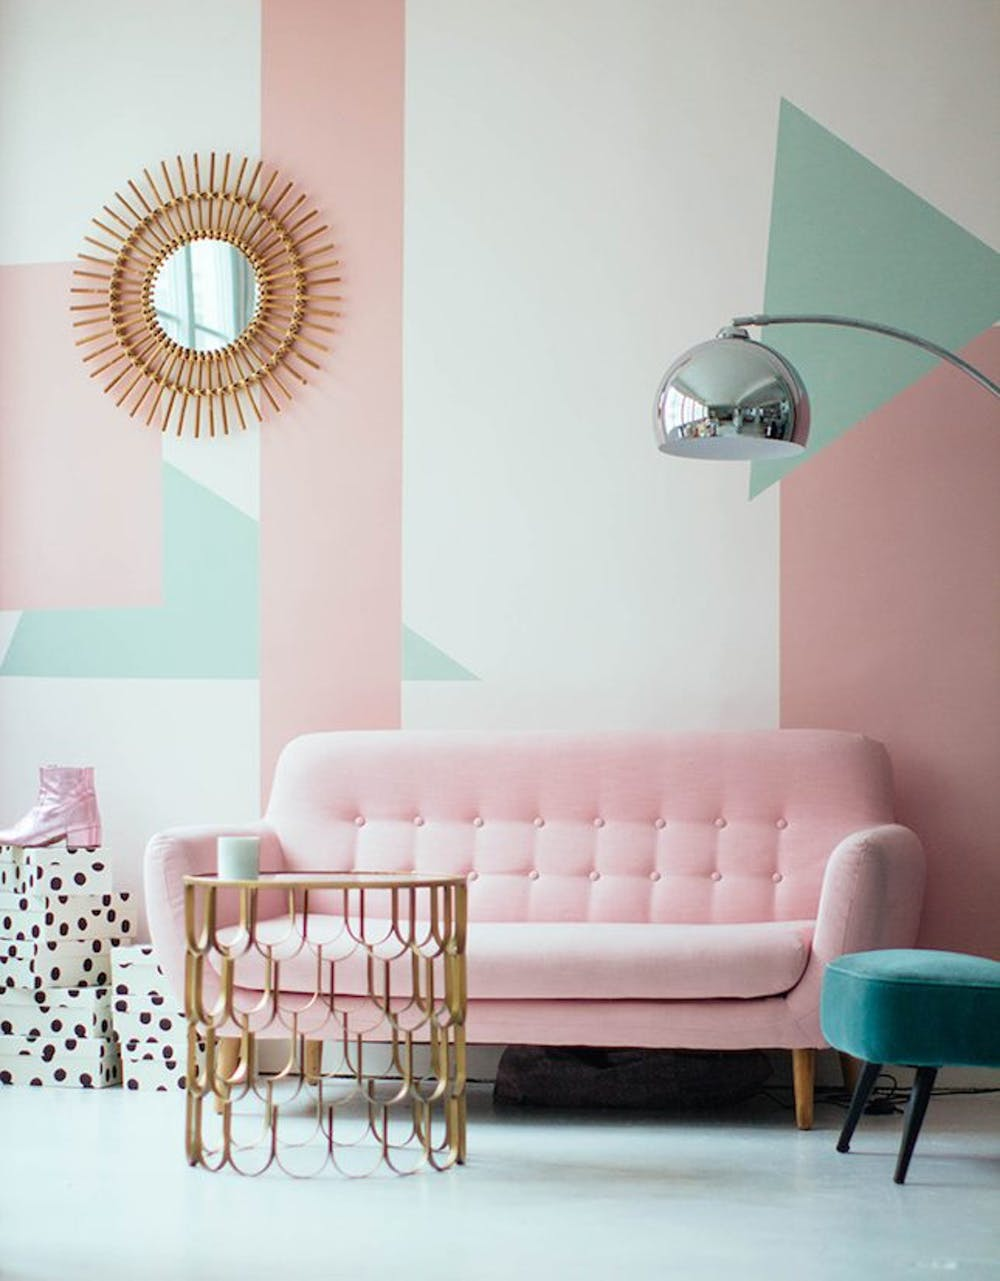 rooms that flawlessly rock the pink mint color trend brit make lemonade portes ouverte studio green accent table retro geometric adding bold blocked patterns will instantly